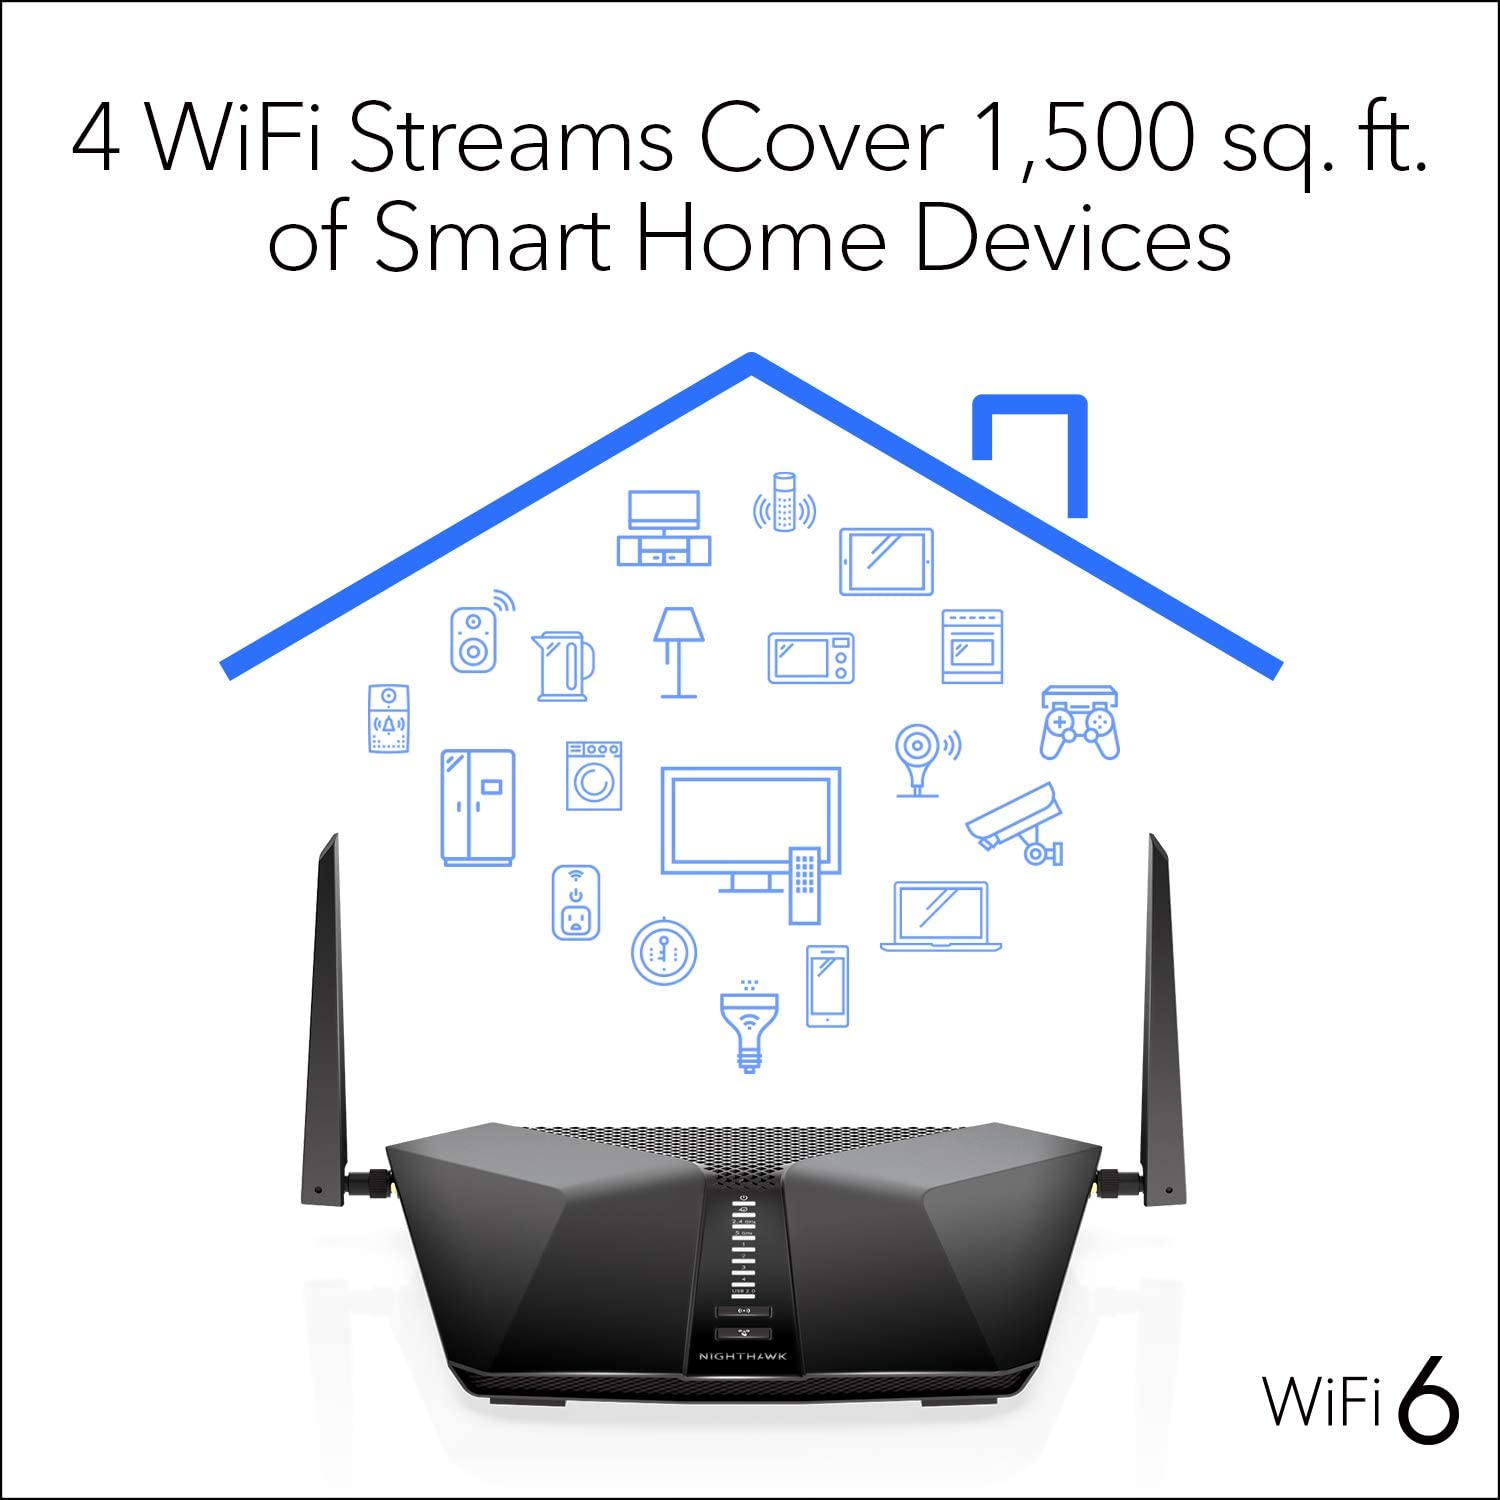 NETGEAR Nighthawk 4-Stream AX4 WiFi 6 Router with 4G LTE Built-in Modem ft Up to 1.8Gbps Coverage | 1,500 sq AX1800 WiFi LAX20